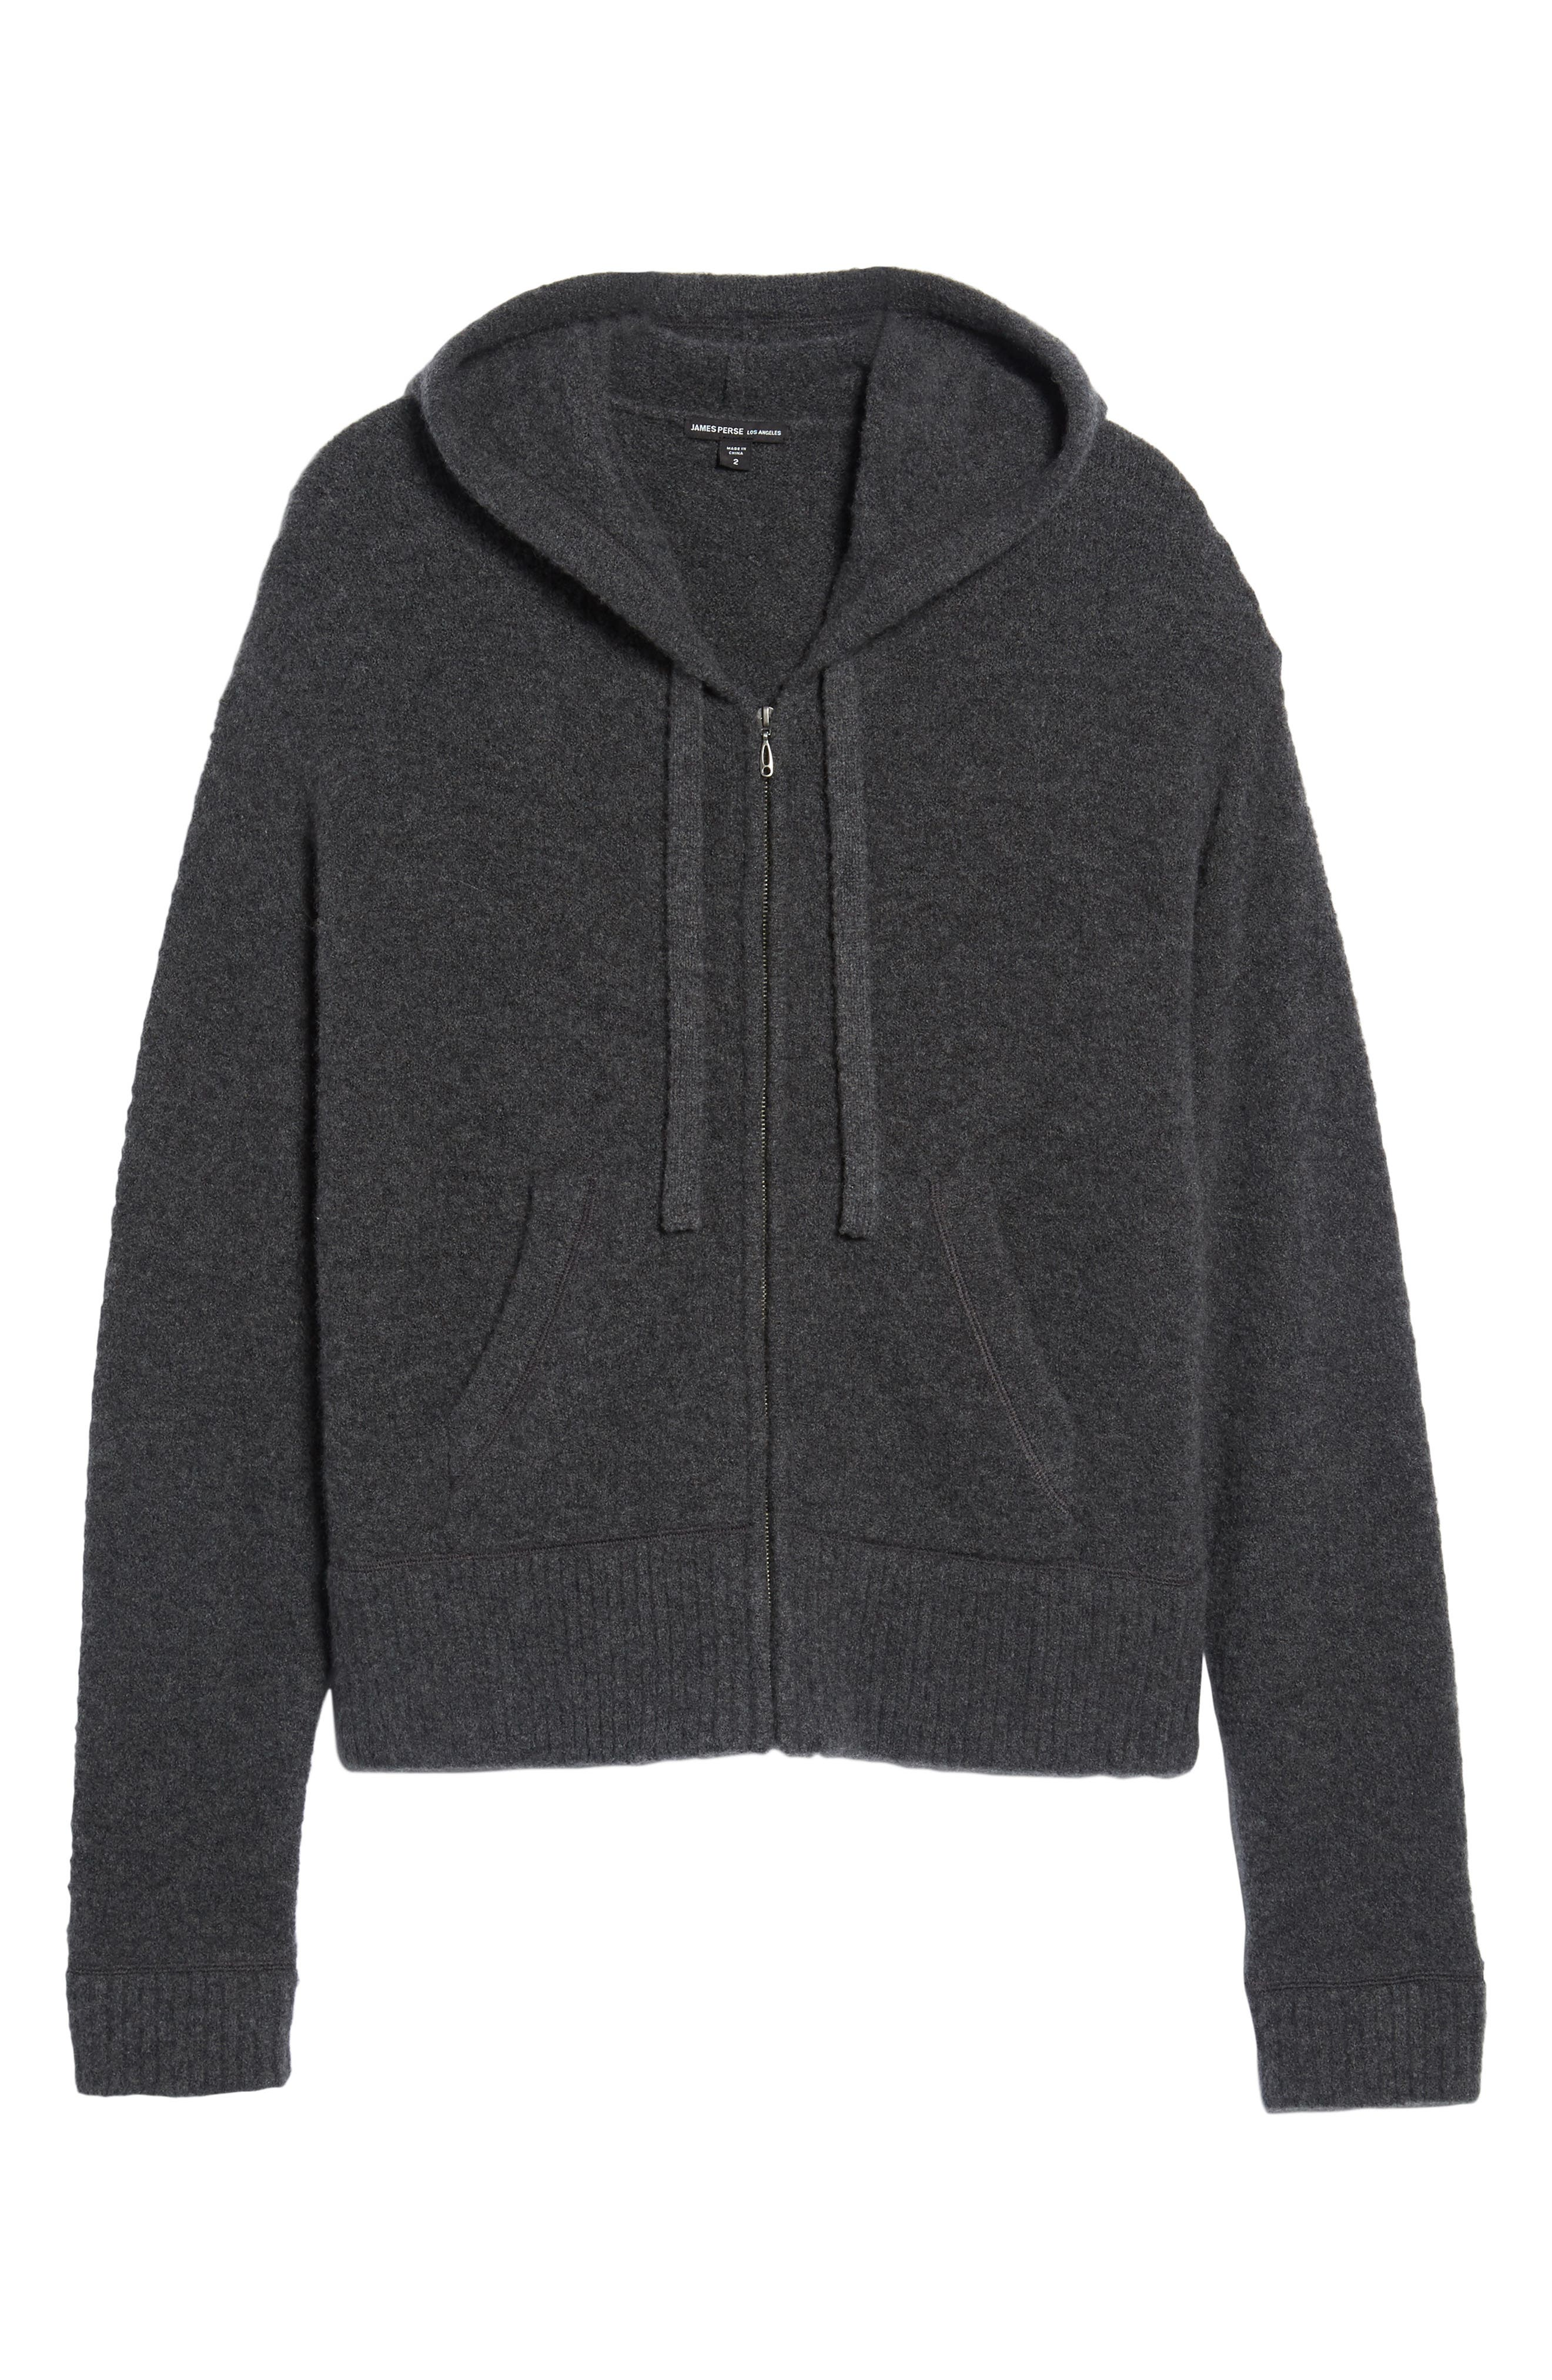 Brushed Cashmere Zip Hoodie,                             Alternate thumbnail 6, color,